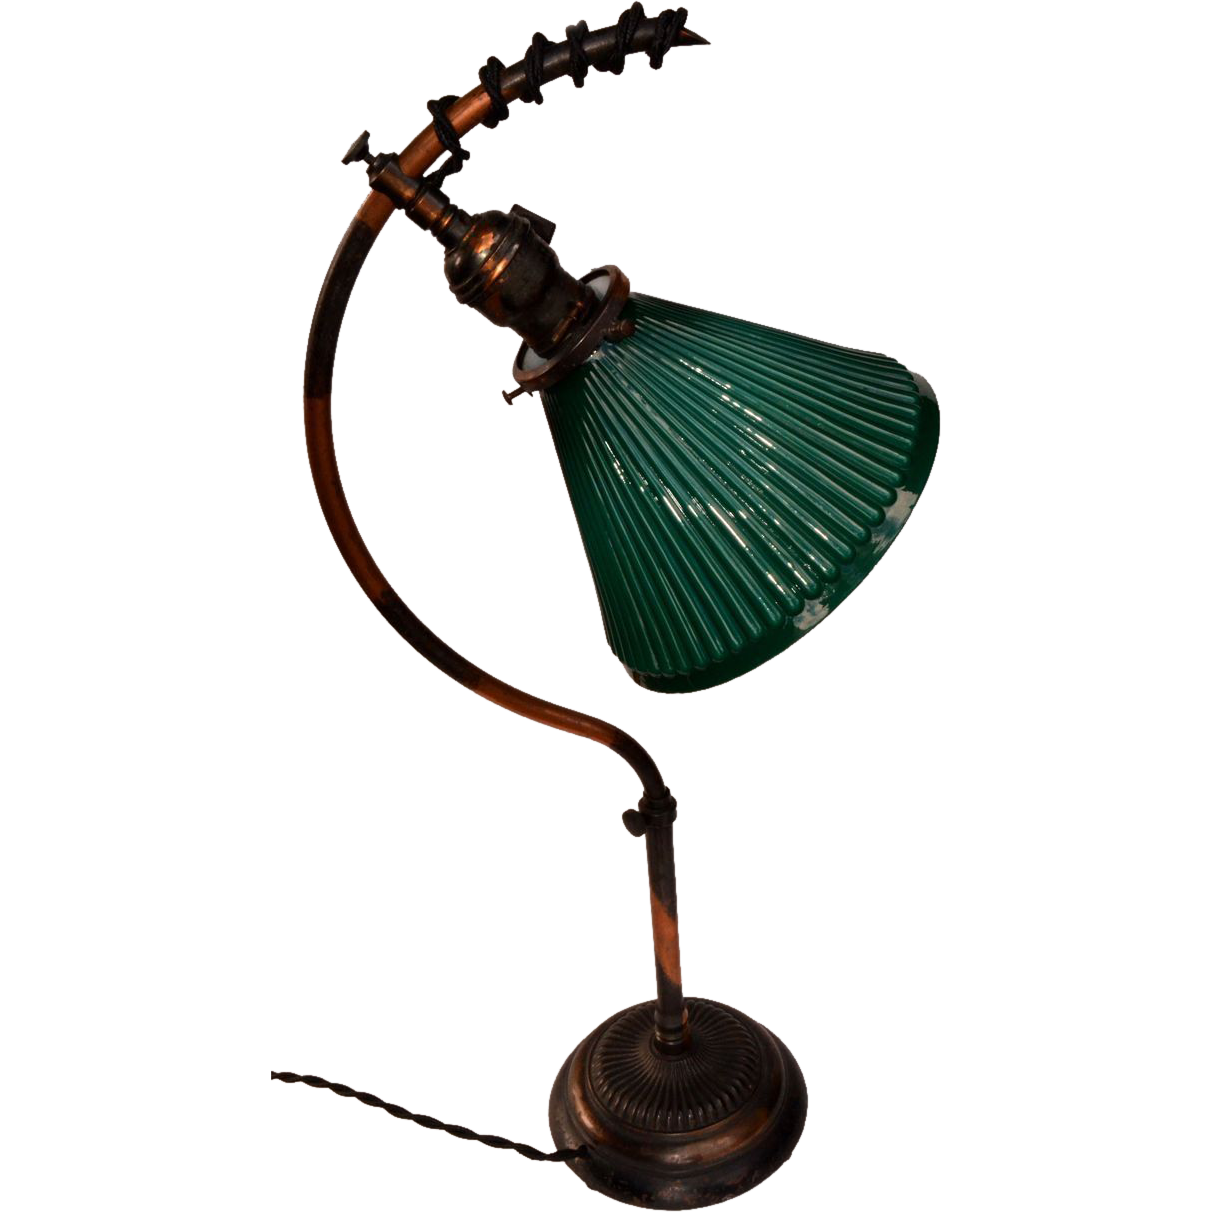 Industrial Task Lamp with Adjustable Height and Oxidized Copper Finish